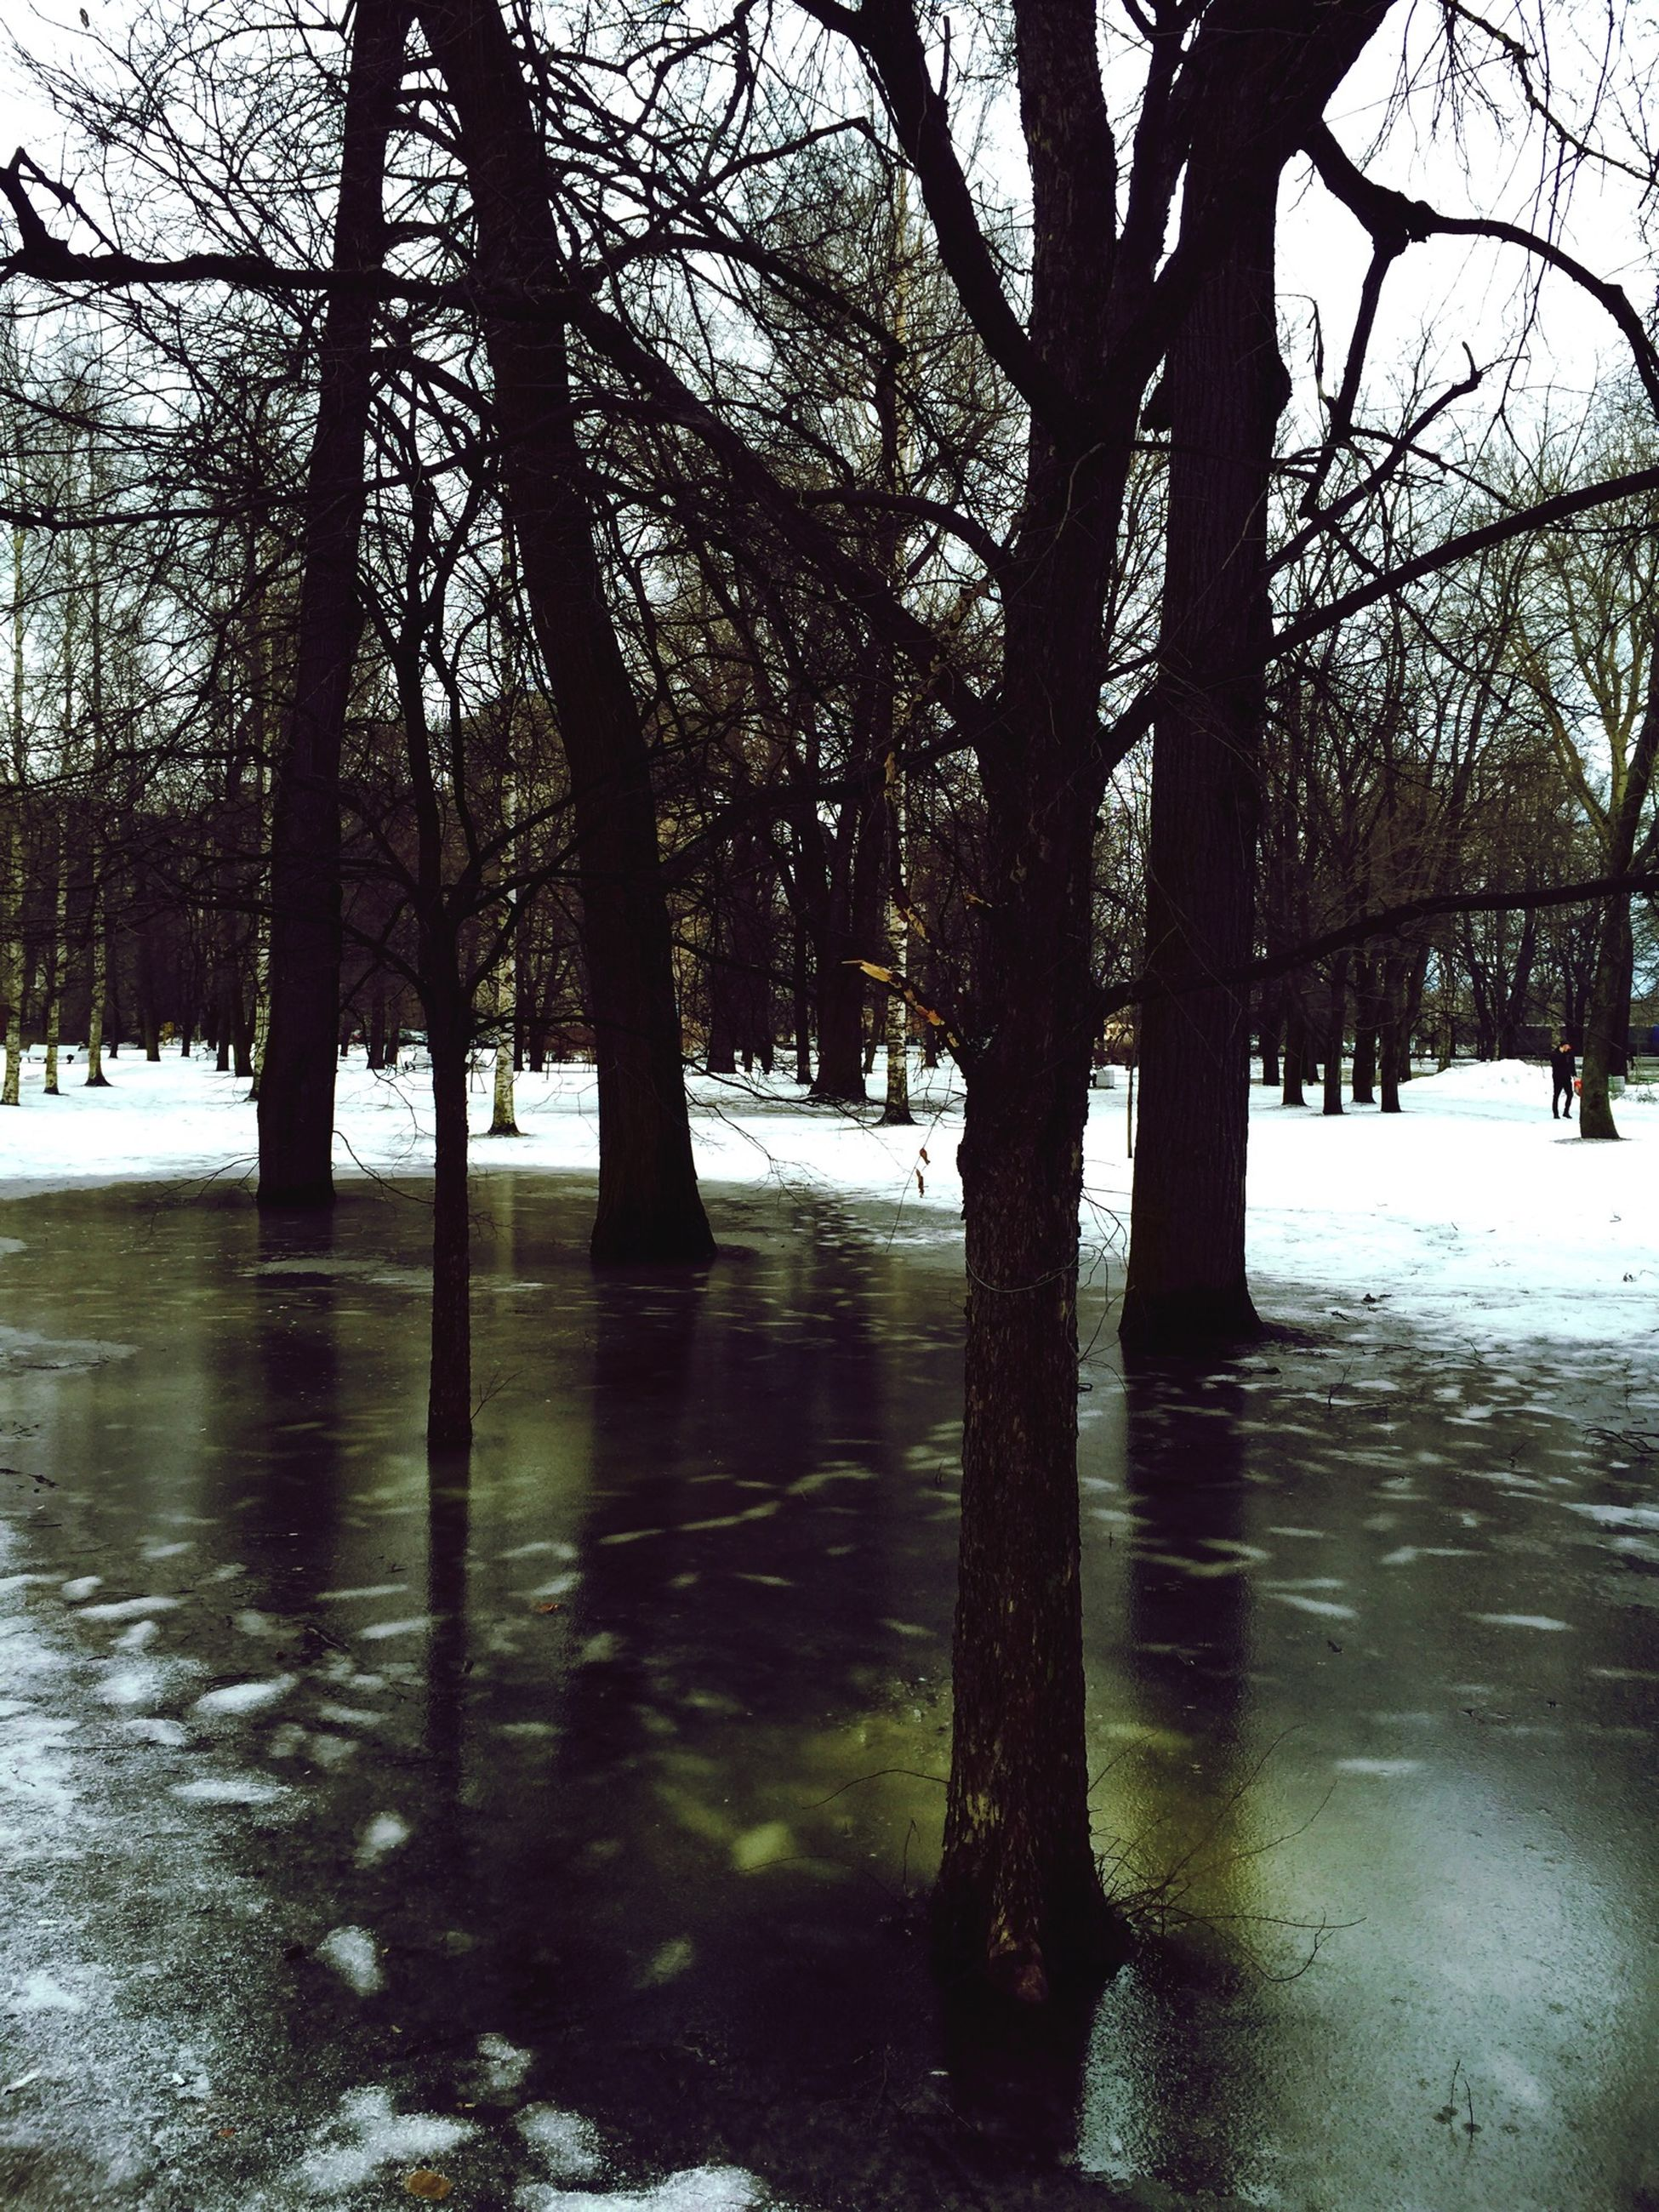 tree, bare tree, tree trunk, winter, water, snow, branch, season, tranquility, cold temperature, nature, tranquil scene, weather, park - man made space, beauty in nature, lake, scenics, treelined, outdoors, river